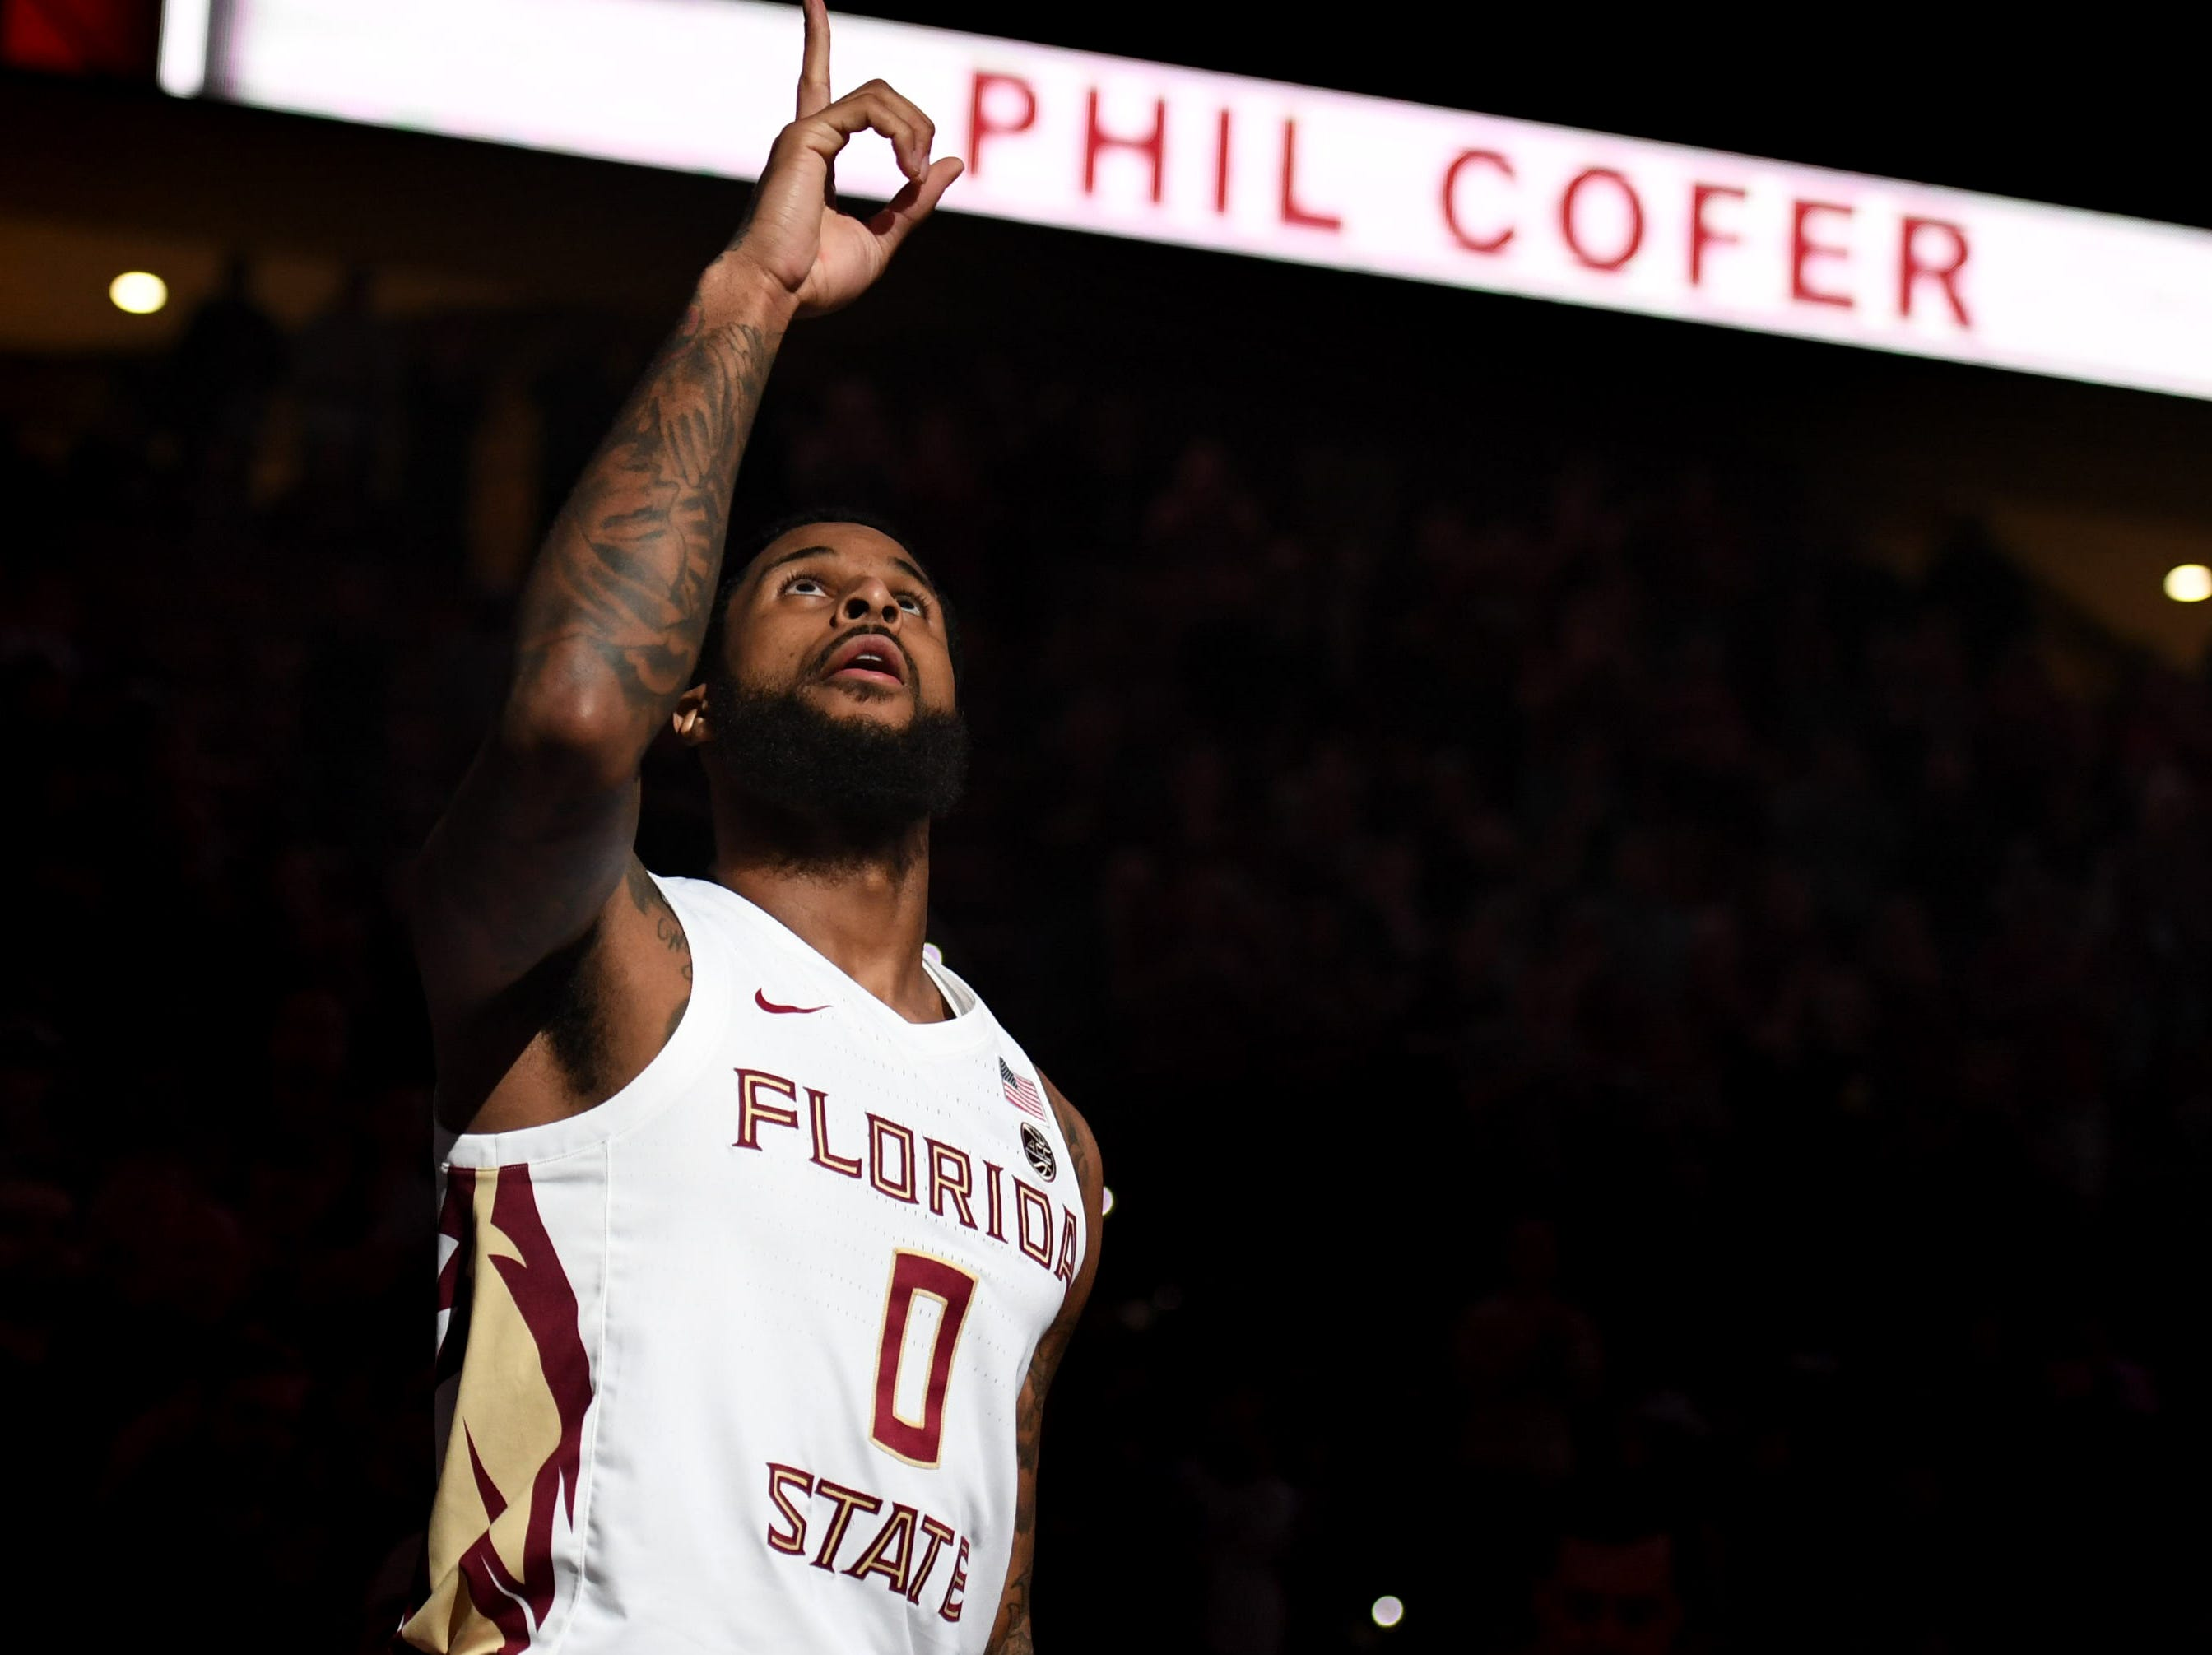 Feb 9, 2019; Tallahassee, FL, USA; Florida State Seminoles forward Phil Cofer (0) is introduced before a game against the Louisville Cardinals at Donald L. Tucker Center. Mandatory Credit: Melina Myers-USA TODAY Sports